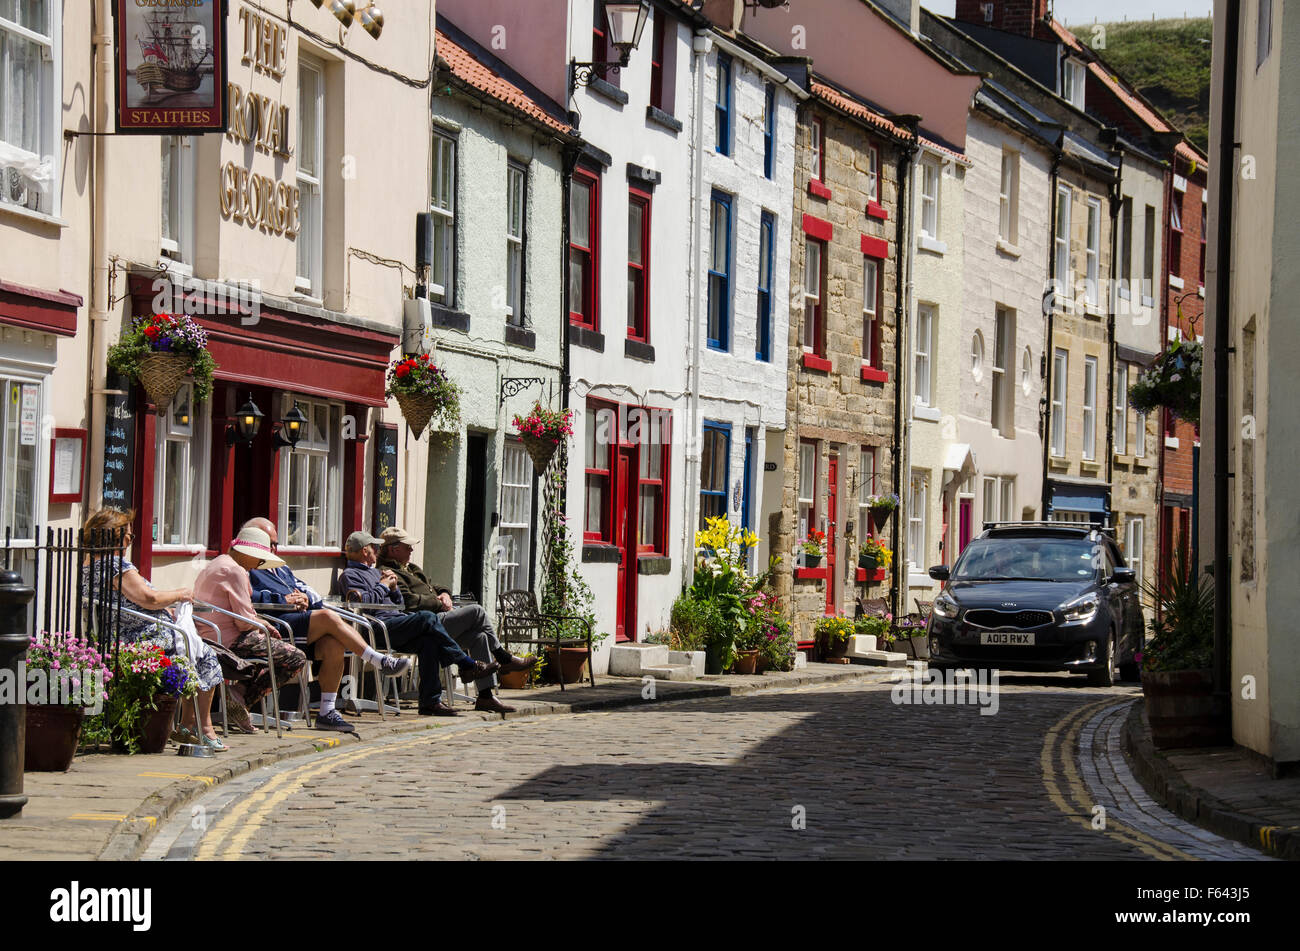 Car rounds the corner as people sit in the sun, relaxing outside pub - narrow cobbled High Street, quaint village of Staithes, North Yorkshire, UK. Stock Photo